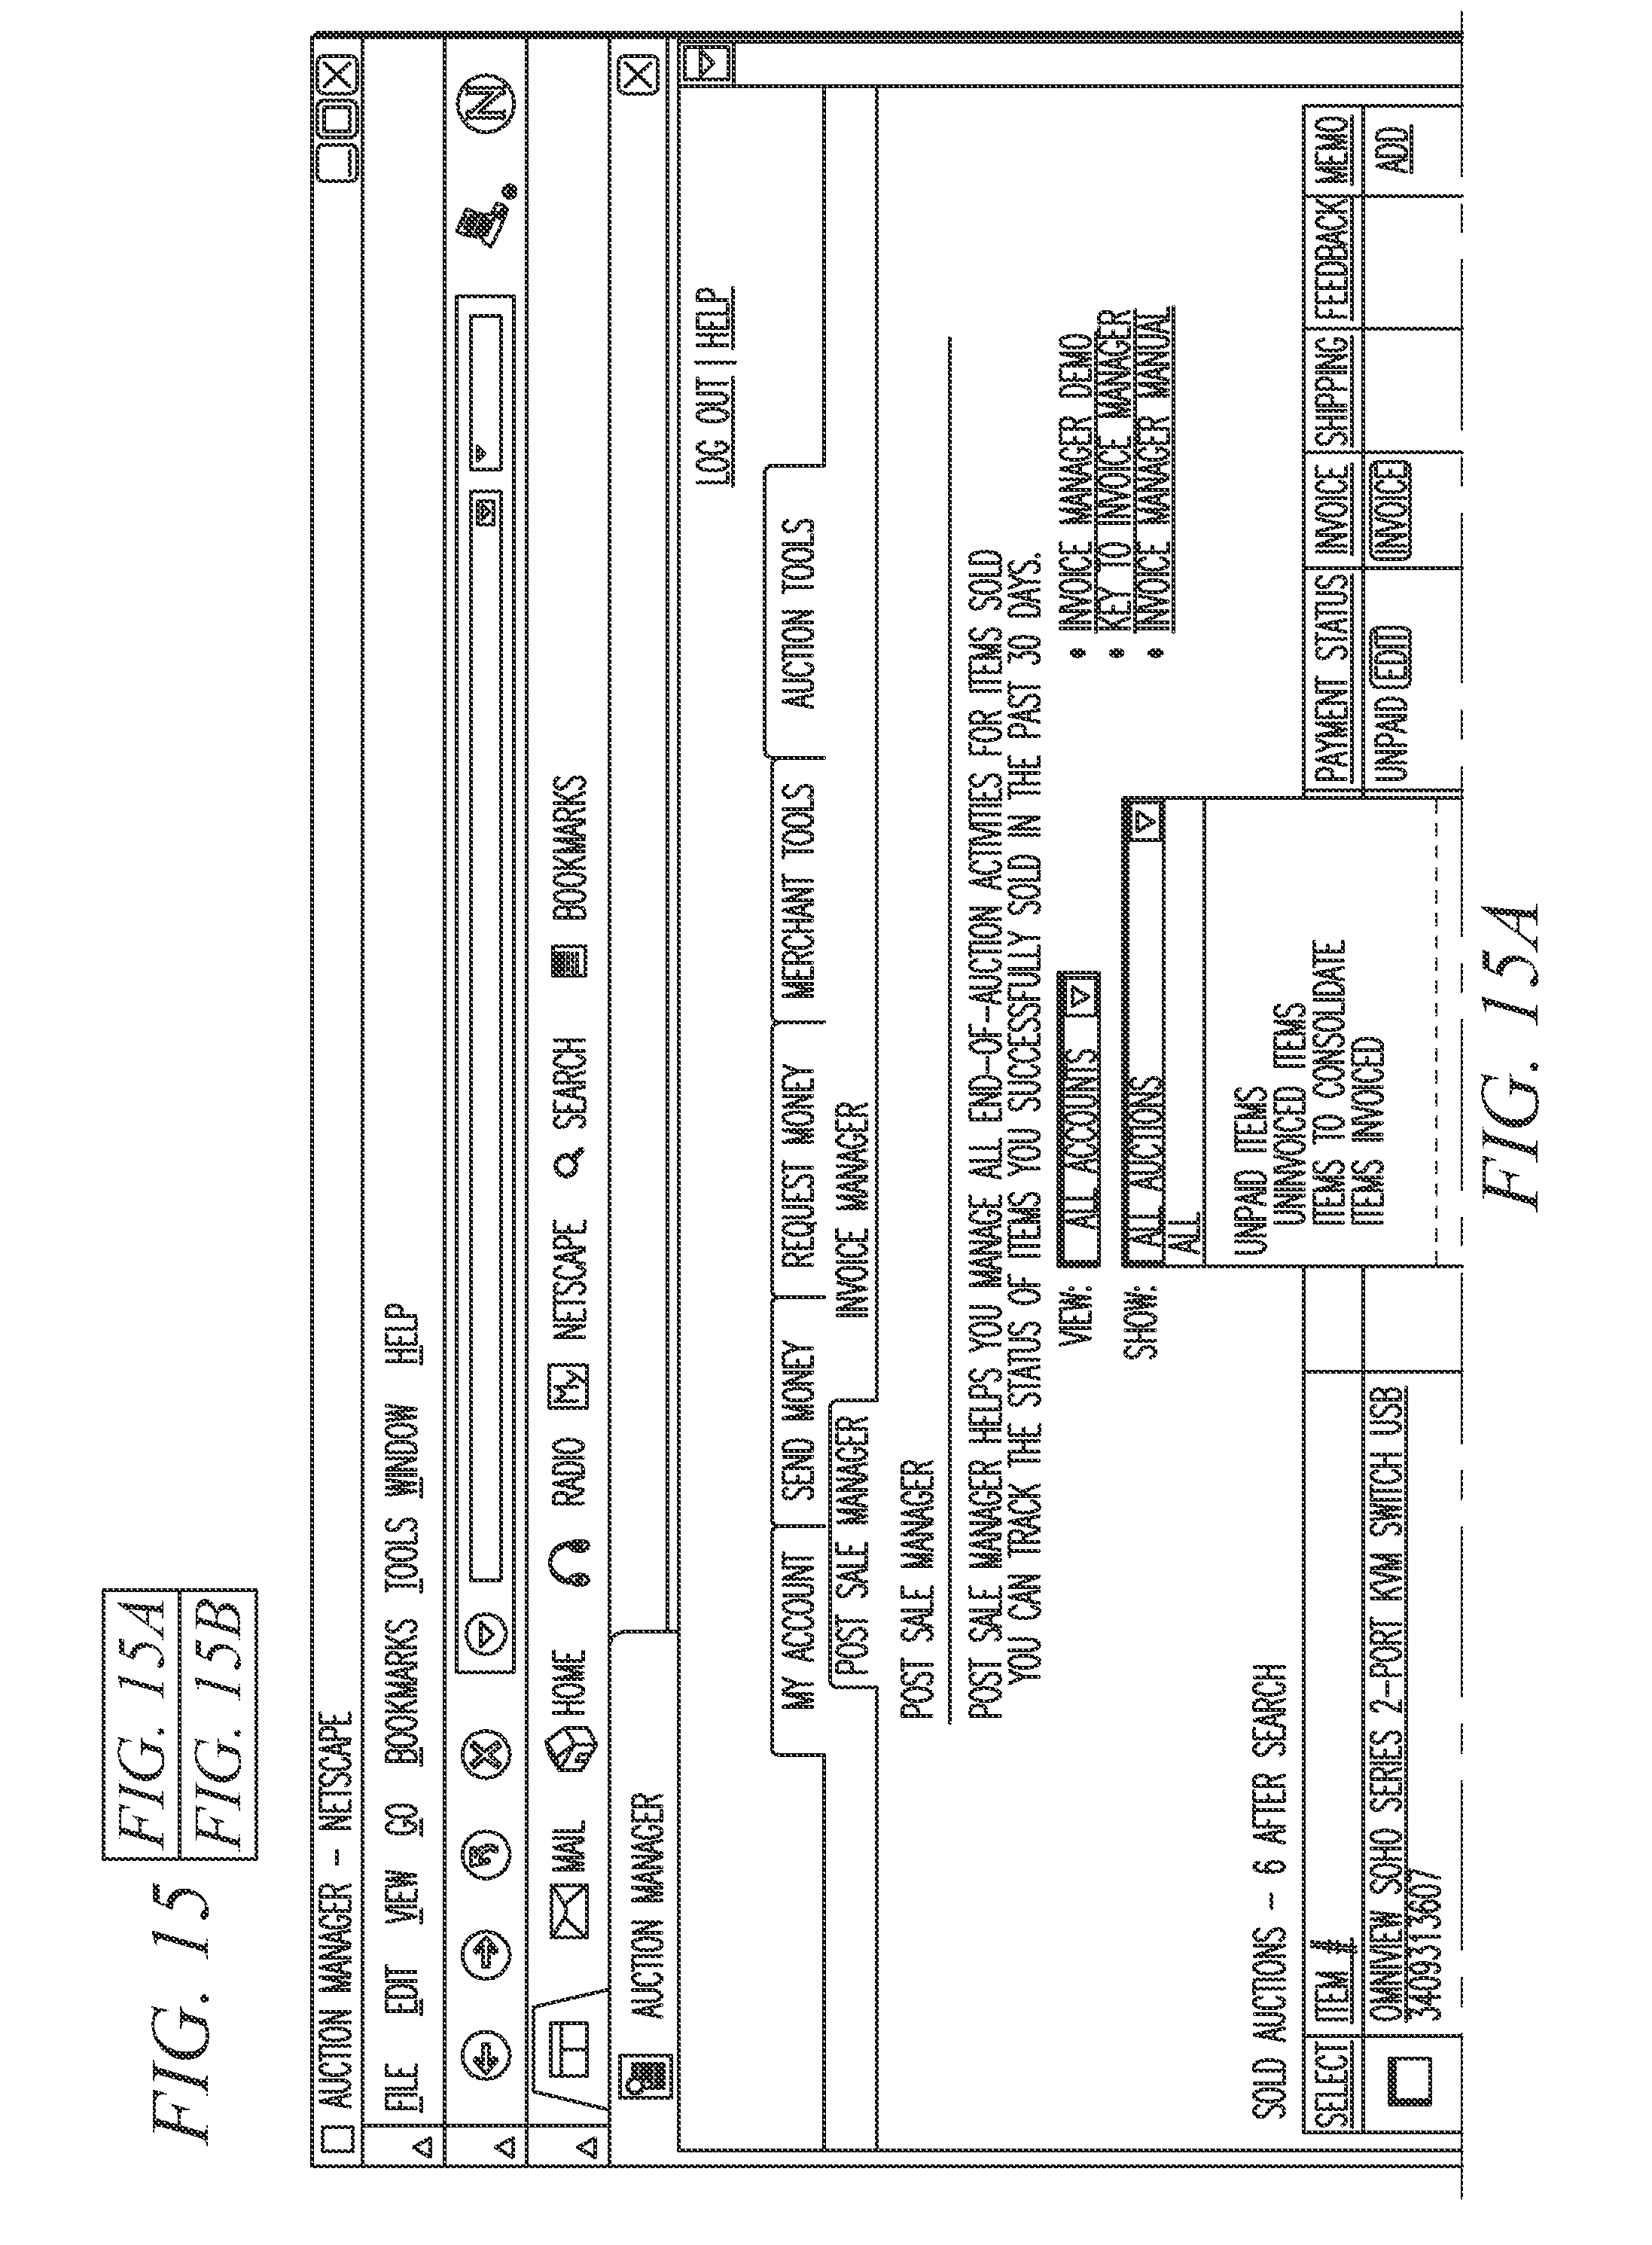 Electronic Invoice Payment Word Patent Us  Invoicing System  Google Patents Square Receipt Word with Uscis H1b Receipt Number Pdf Patent Drawing Iphone Receipt App Word